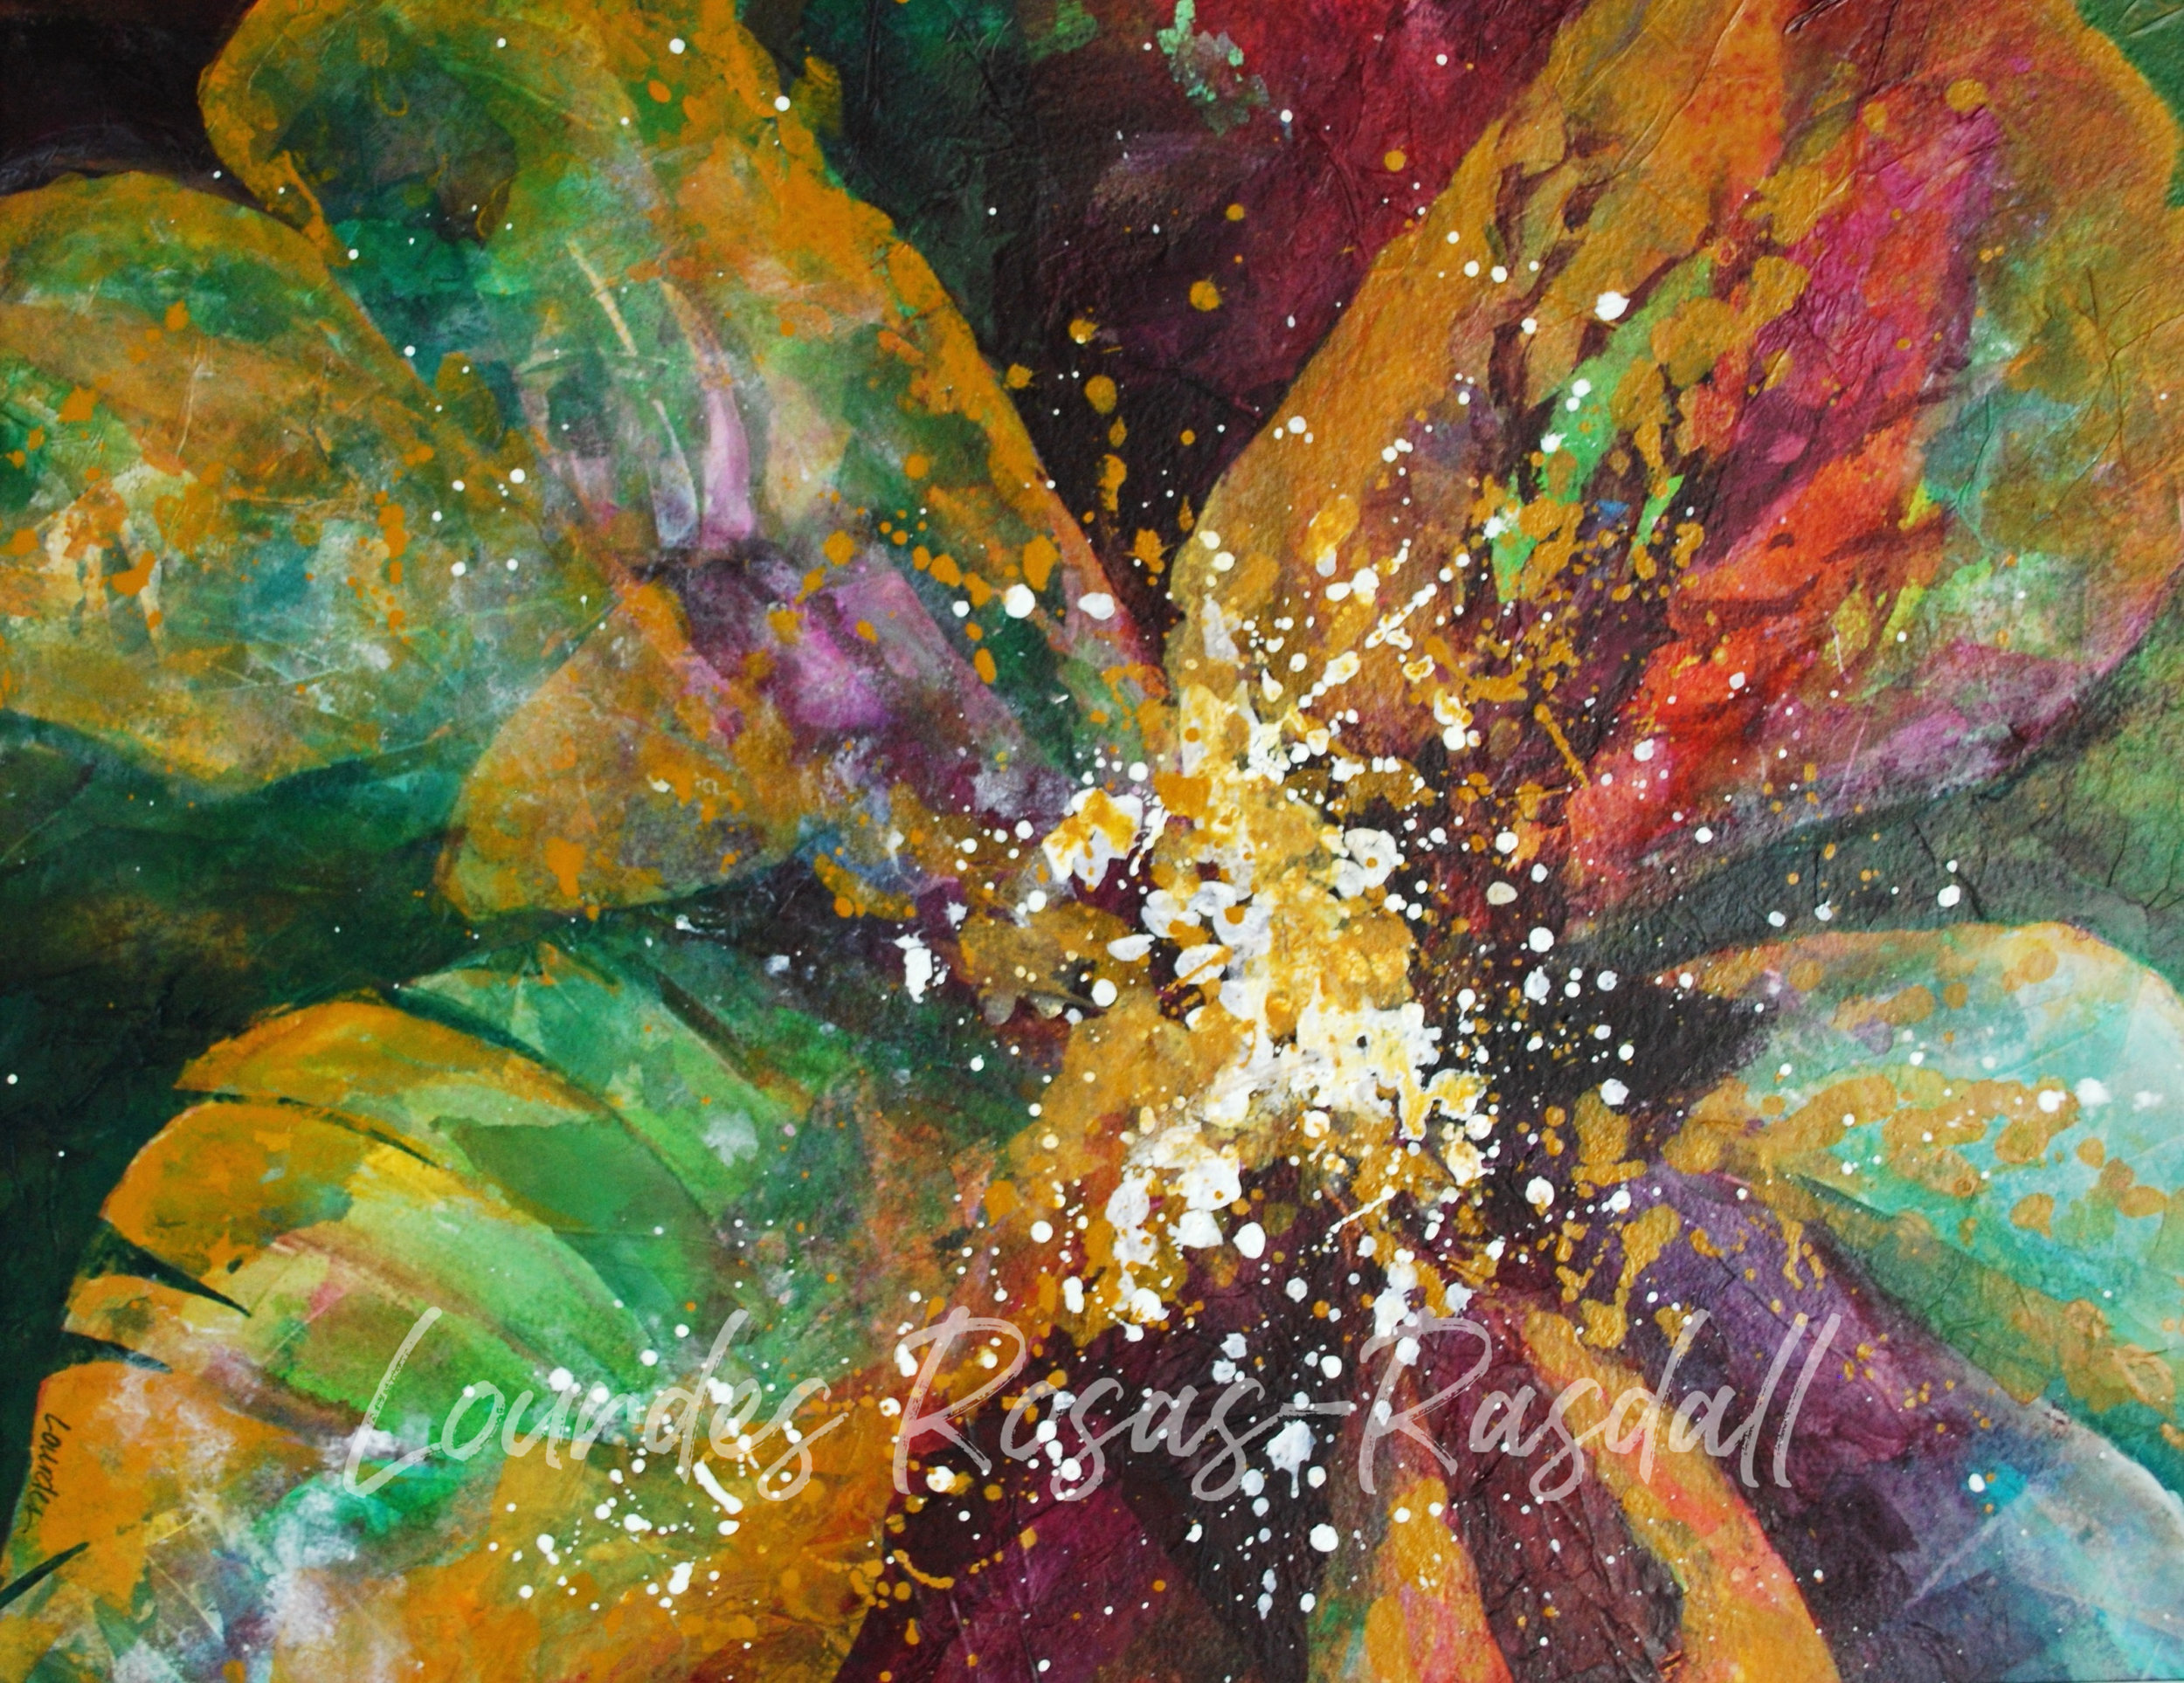 Breaking Through | Watercolor Painting by Lourdes Rosas Rasdall